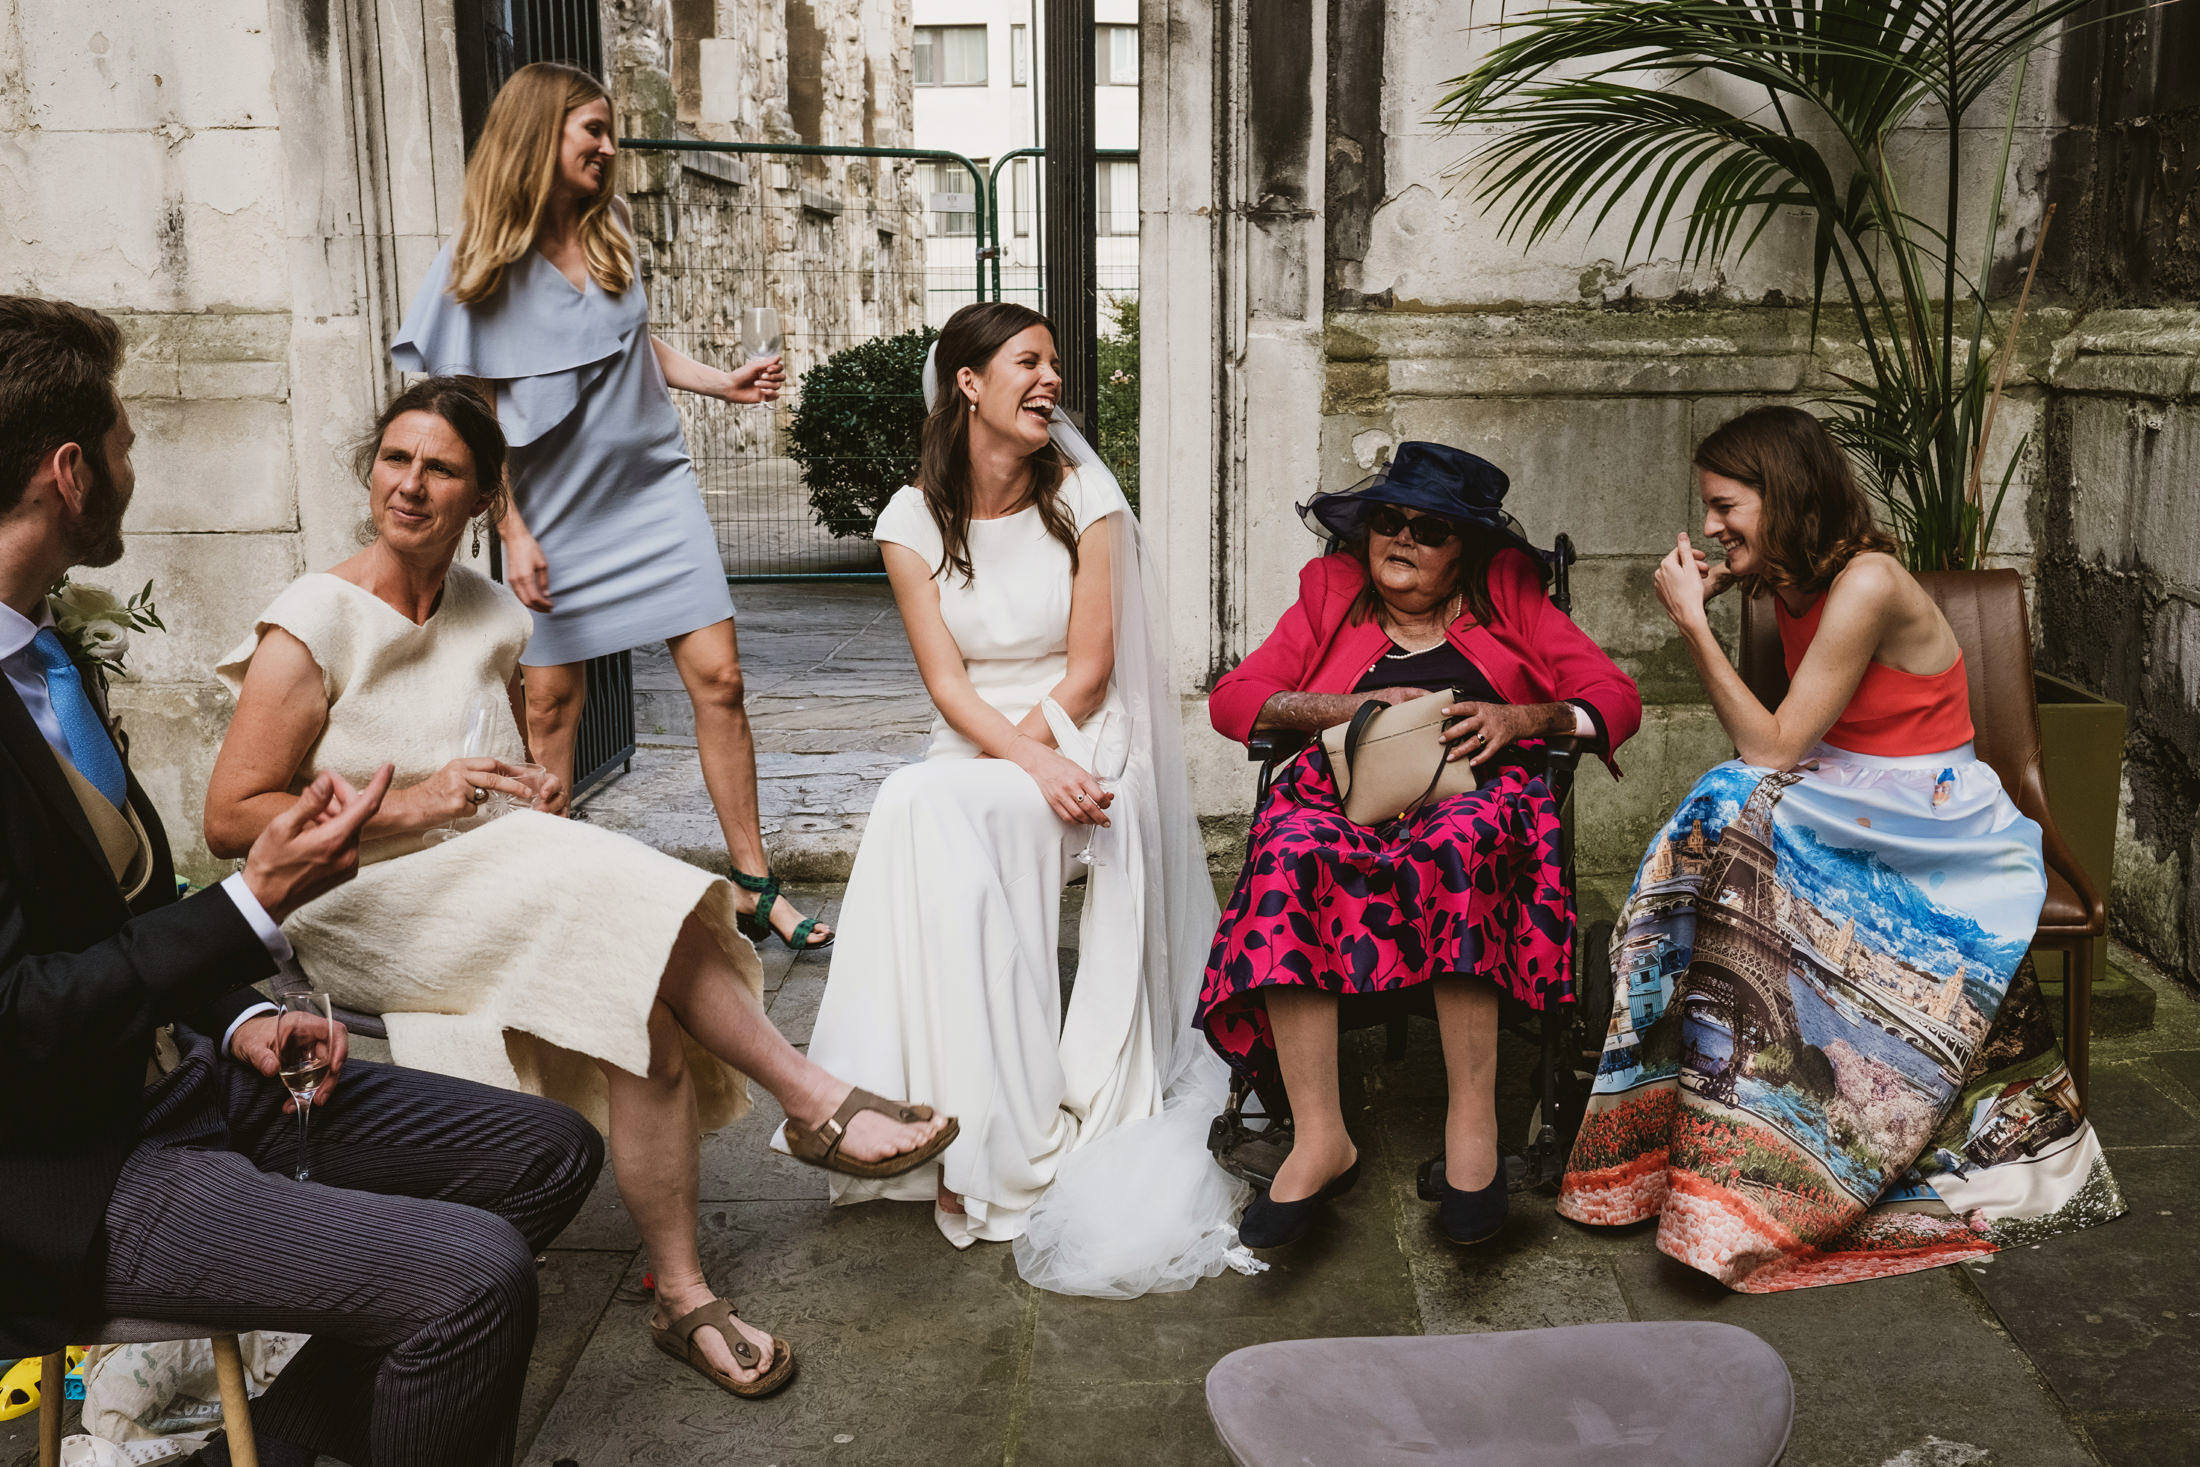 A bride is seated in the centre of the frame at an outdoor wedding in London. She laughs along with the two seated guests to her left. To her right a woman stands in the background as she comes to join the conversation, whilst beside her, closer to camera, two more seated members of the wedding party interact.